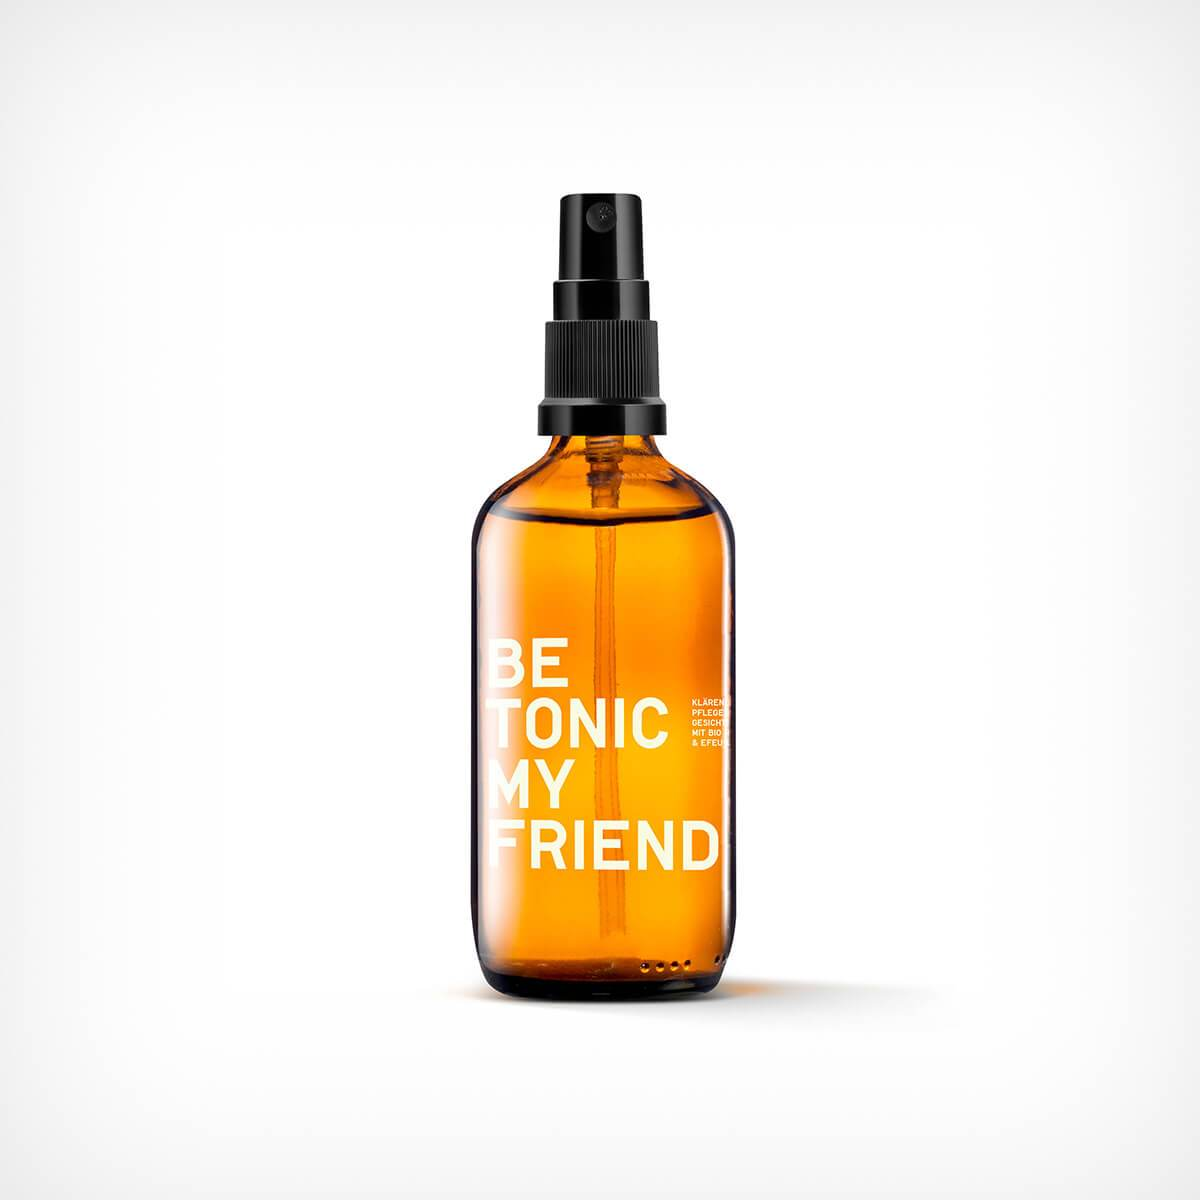 "Gesichtsspray ""BE [TONIC] MY FRIEND"" Rosmarin – diesellerie.com"